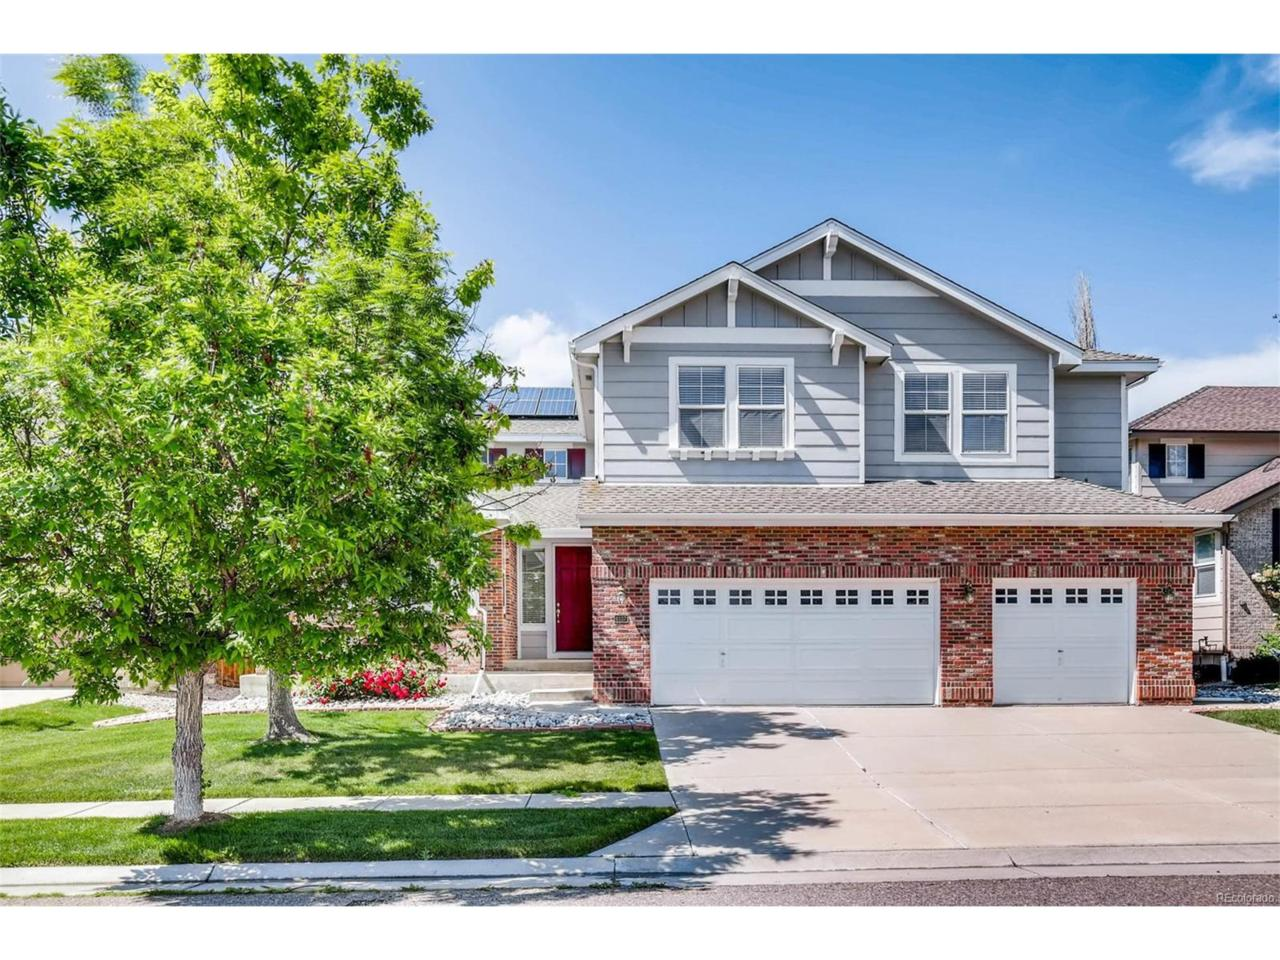 6137 W Ida Drive, Littleton, CO 80123 (MLS #4952776) :: 8z Real Estate